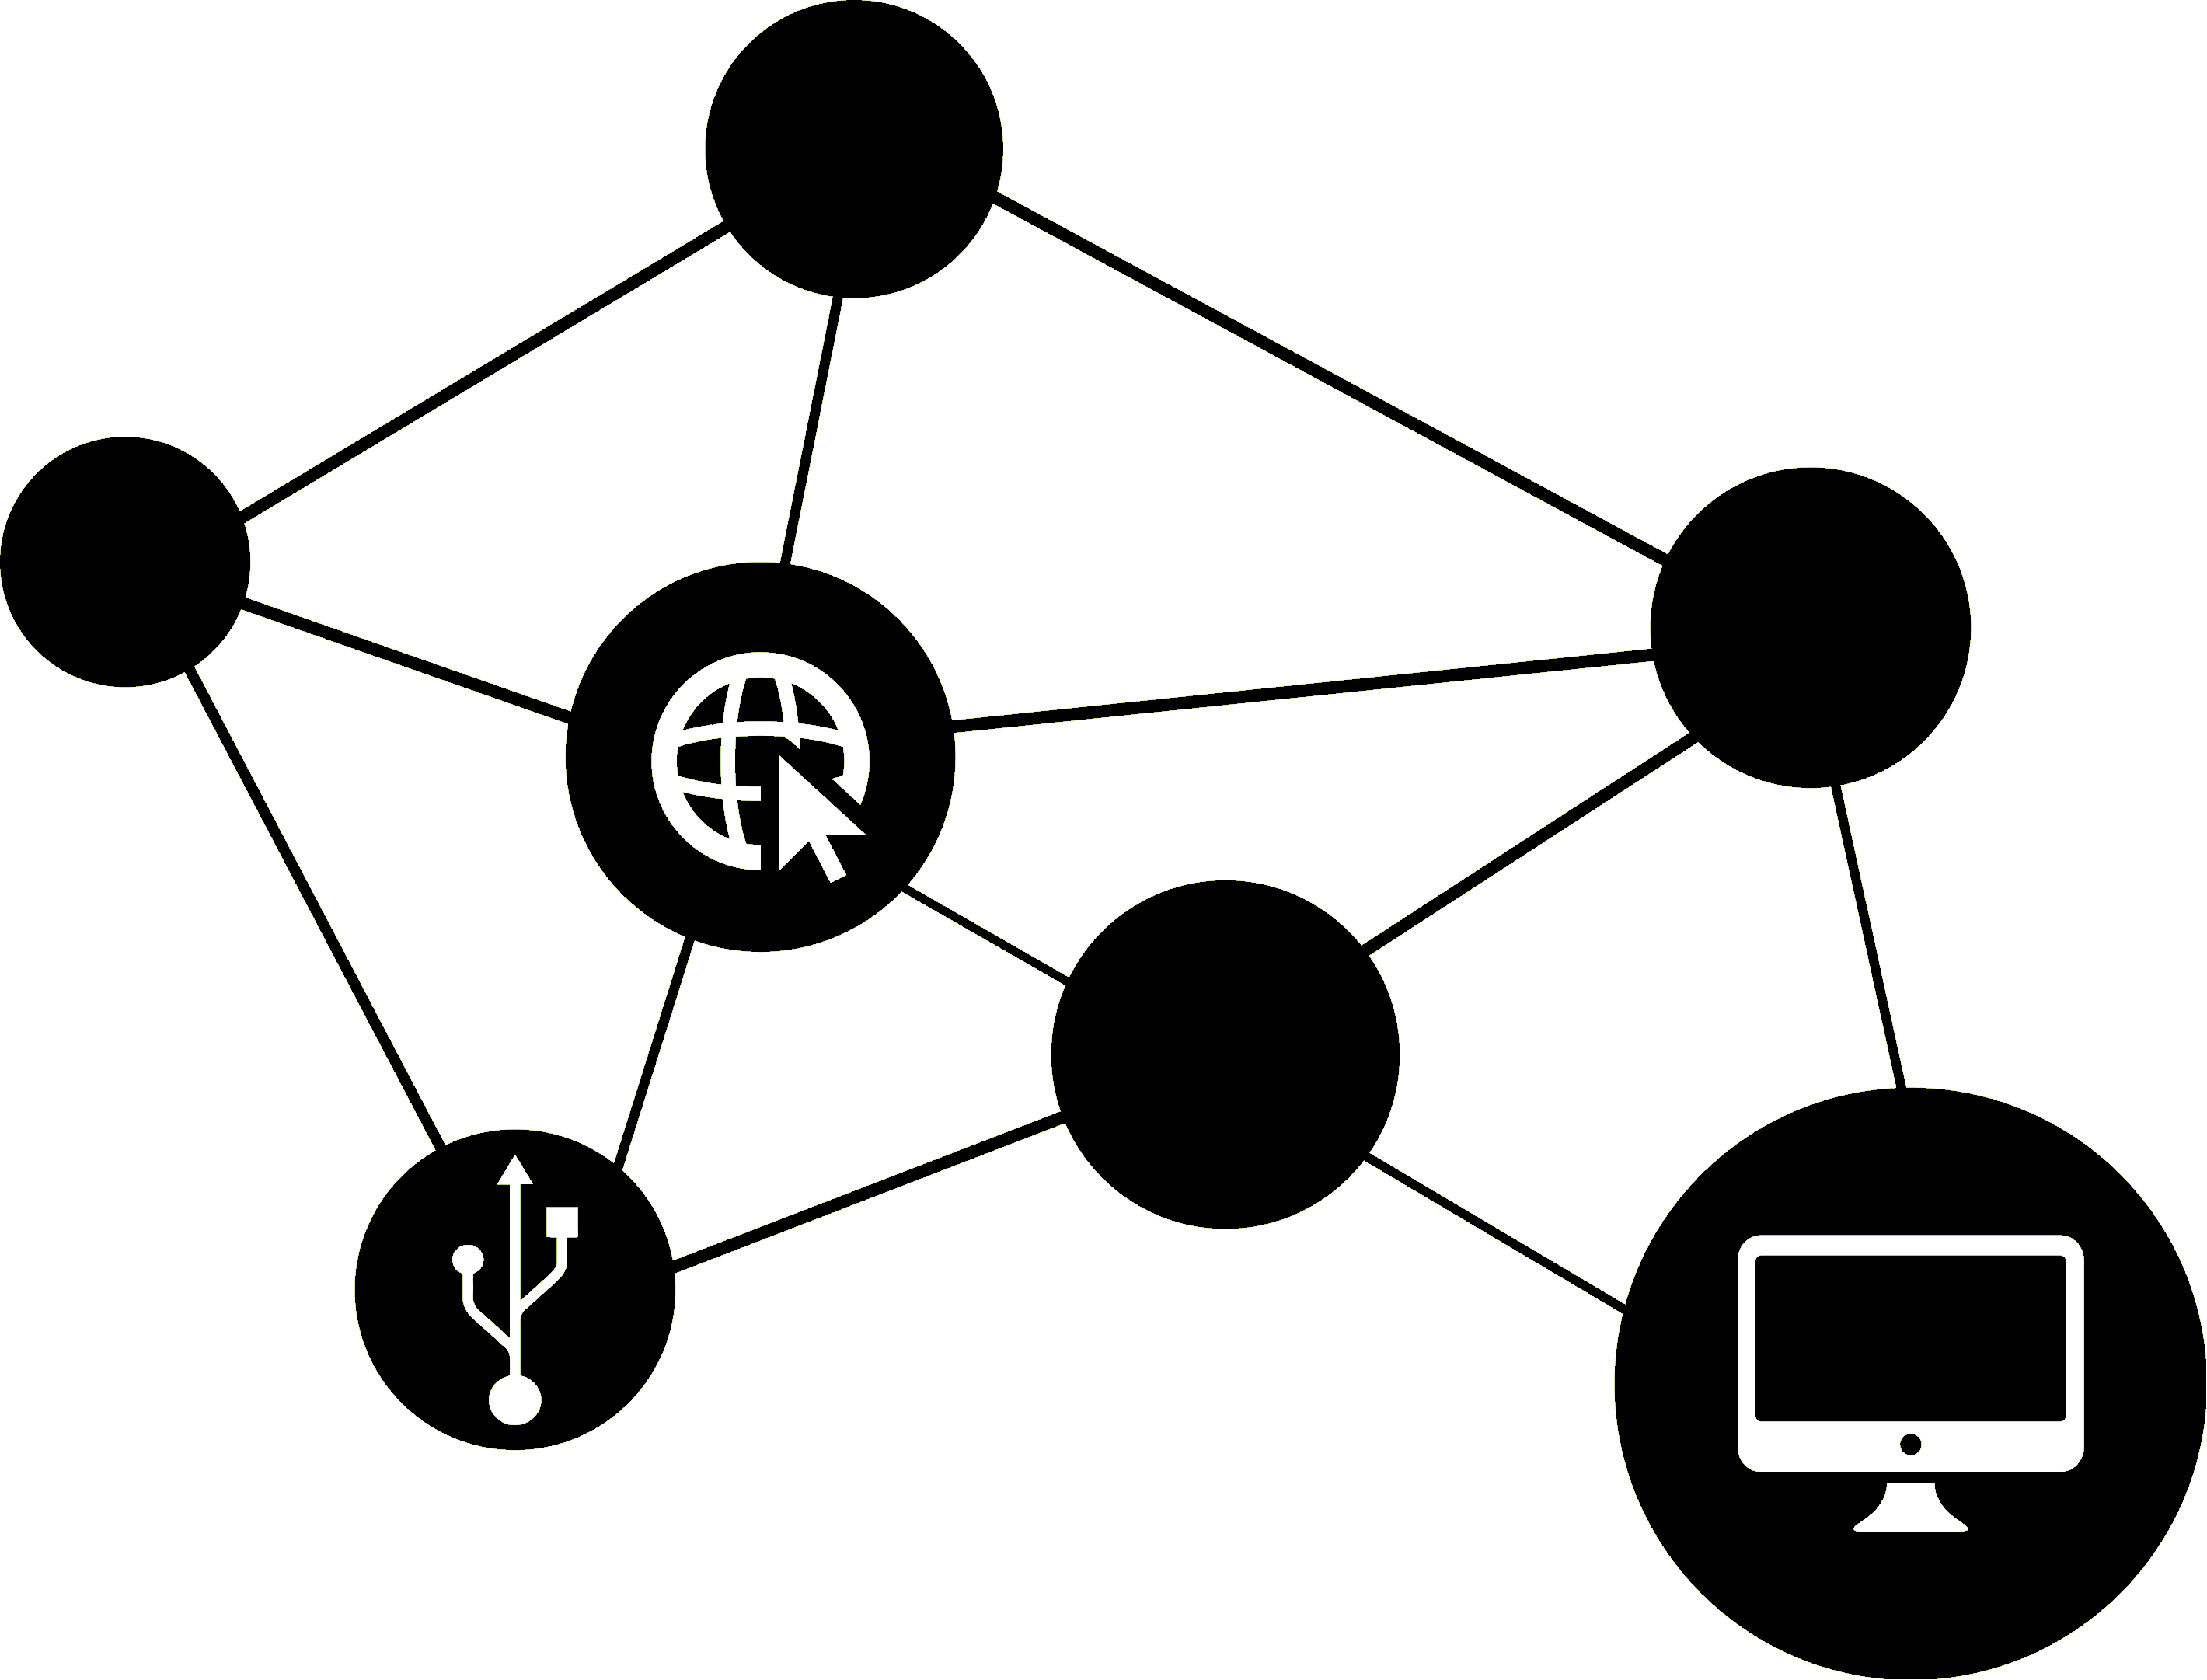 Network clipart networking, Network networking Transparent.